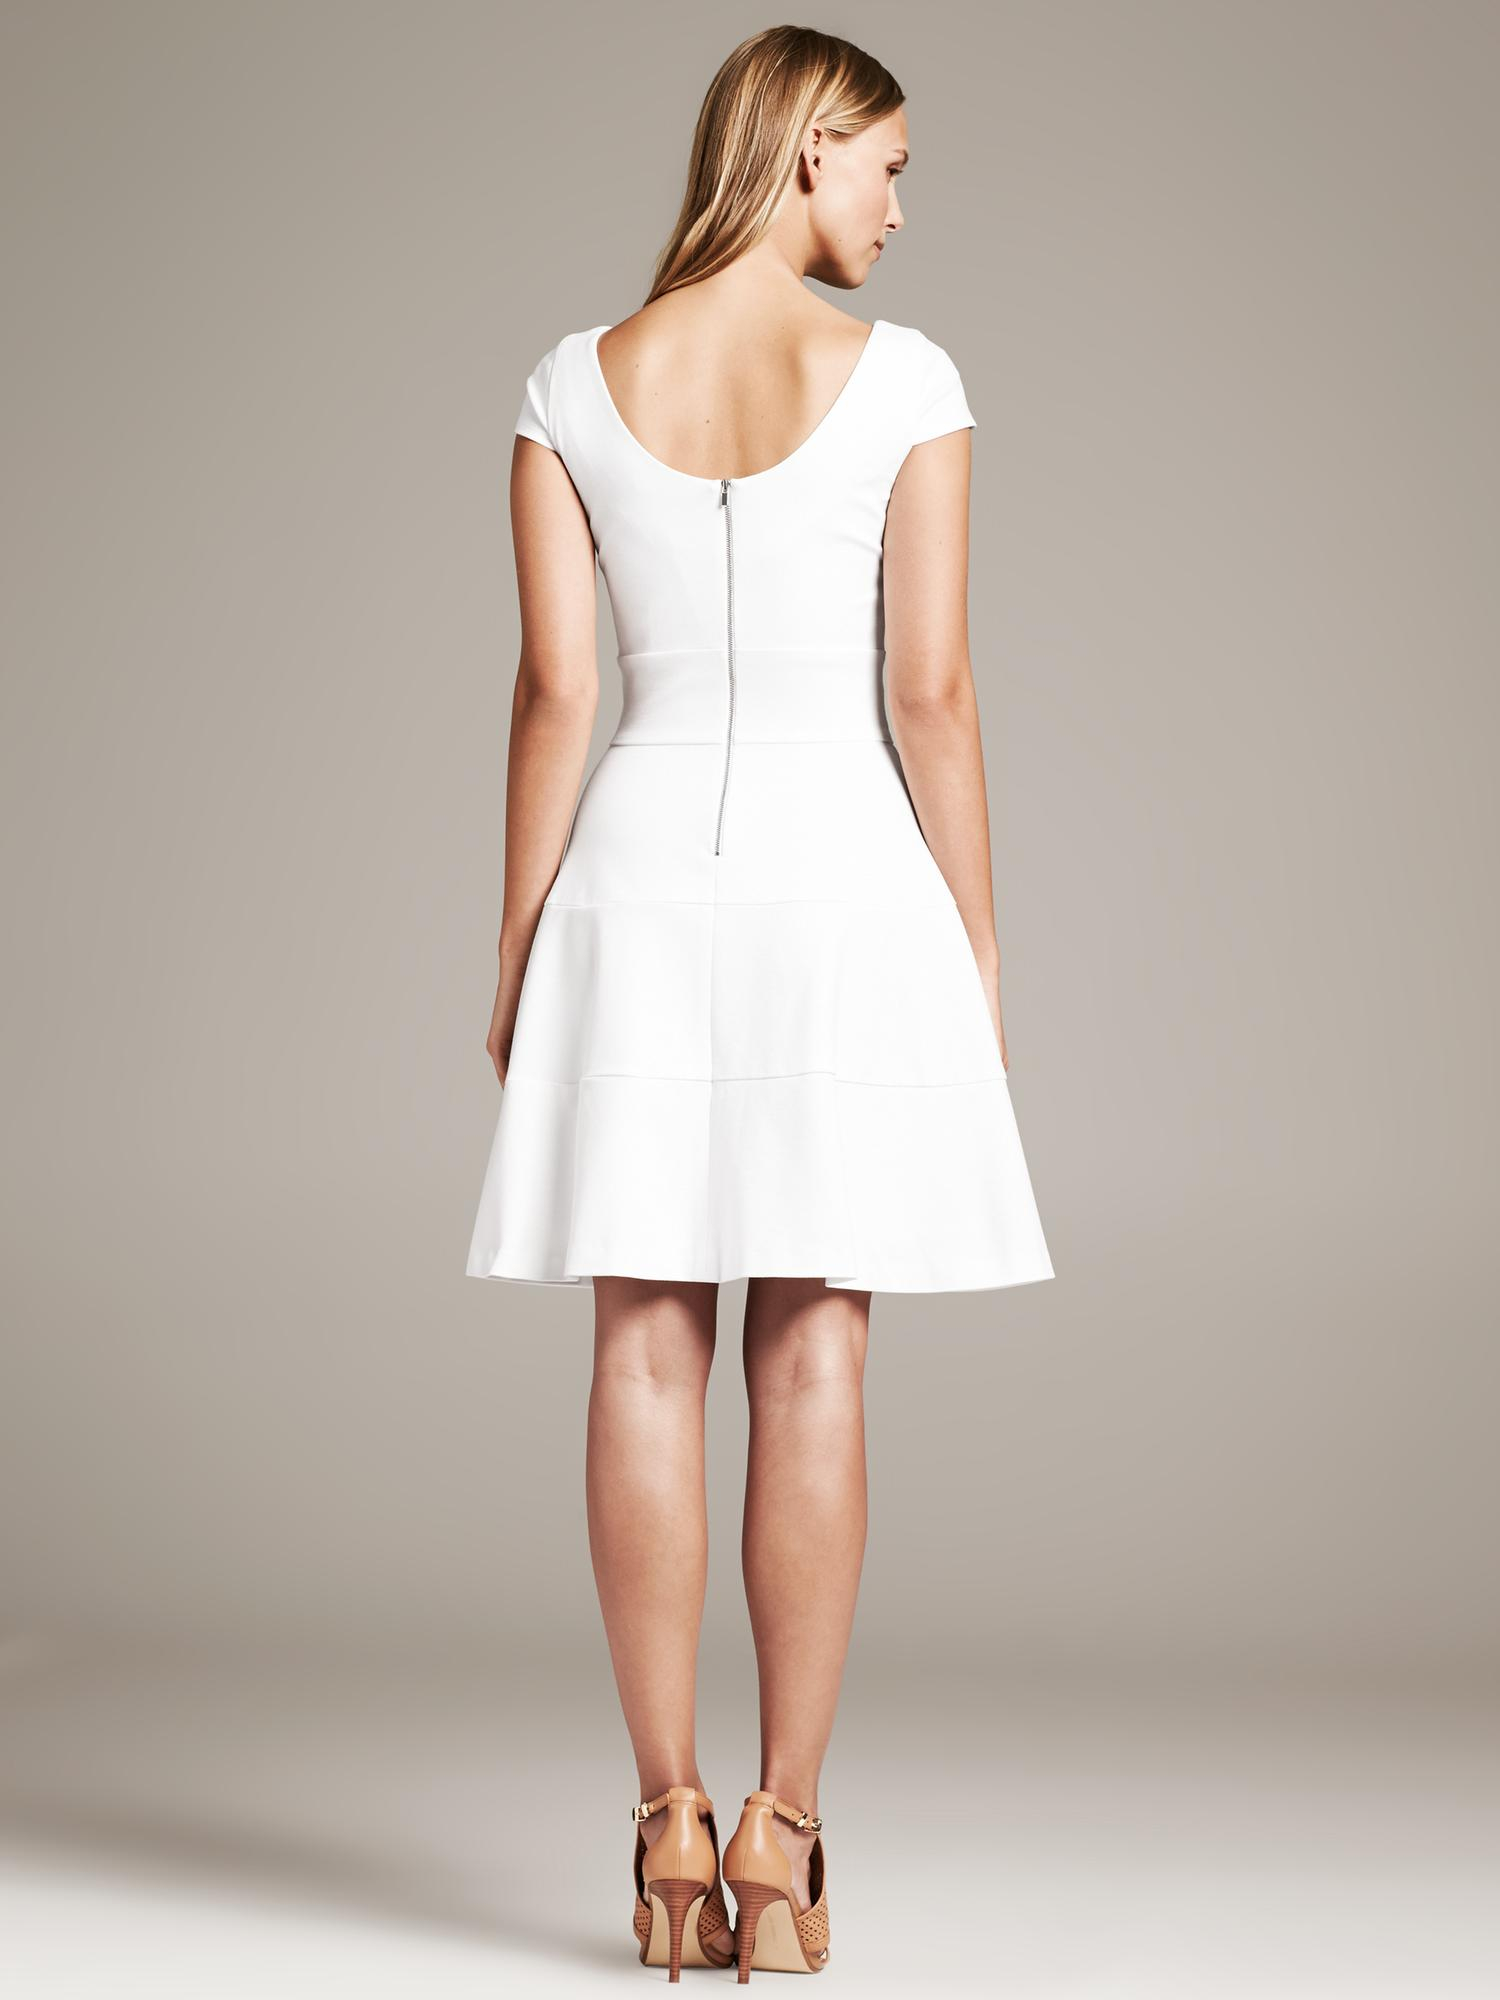 Lyst  Banana Republic Seamed FitAndFlare Dress in White